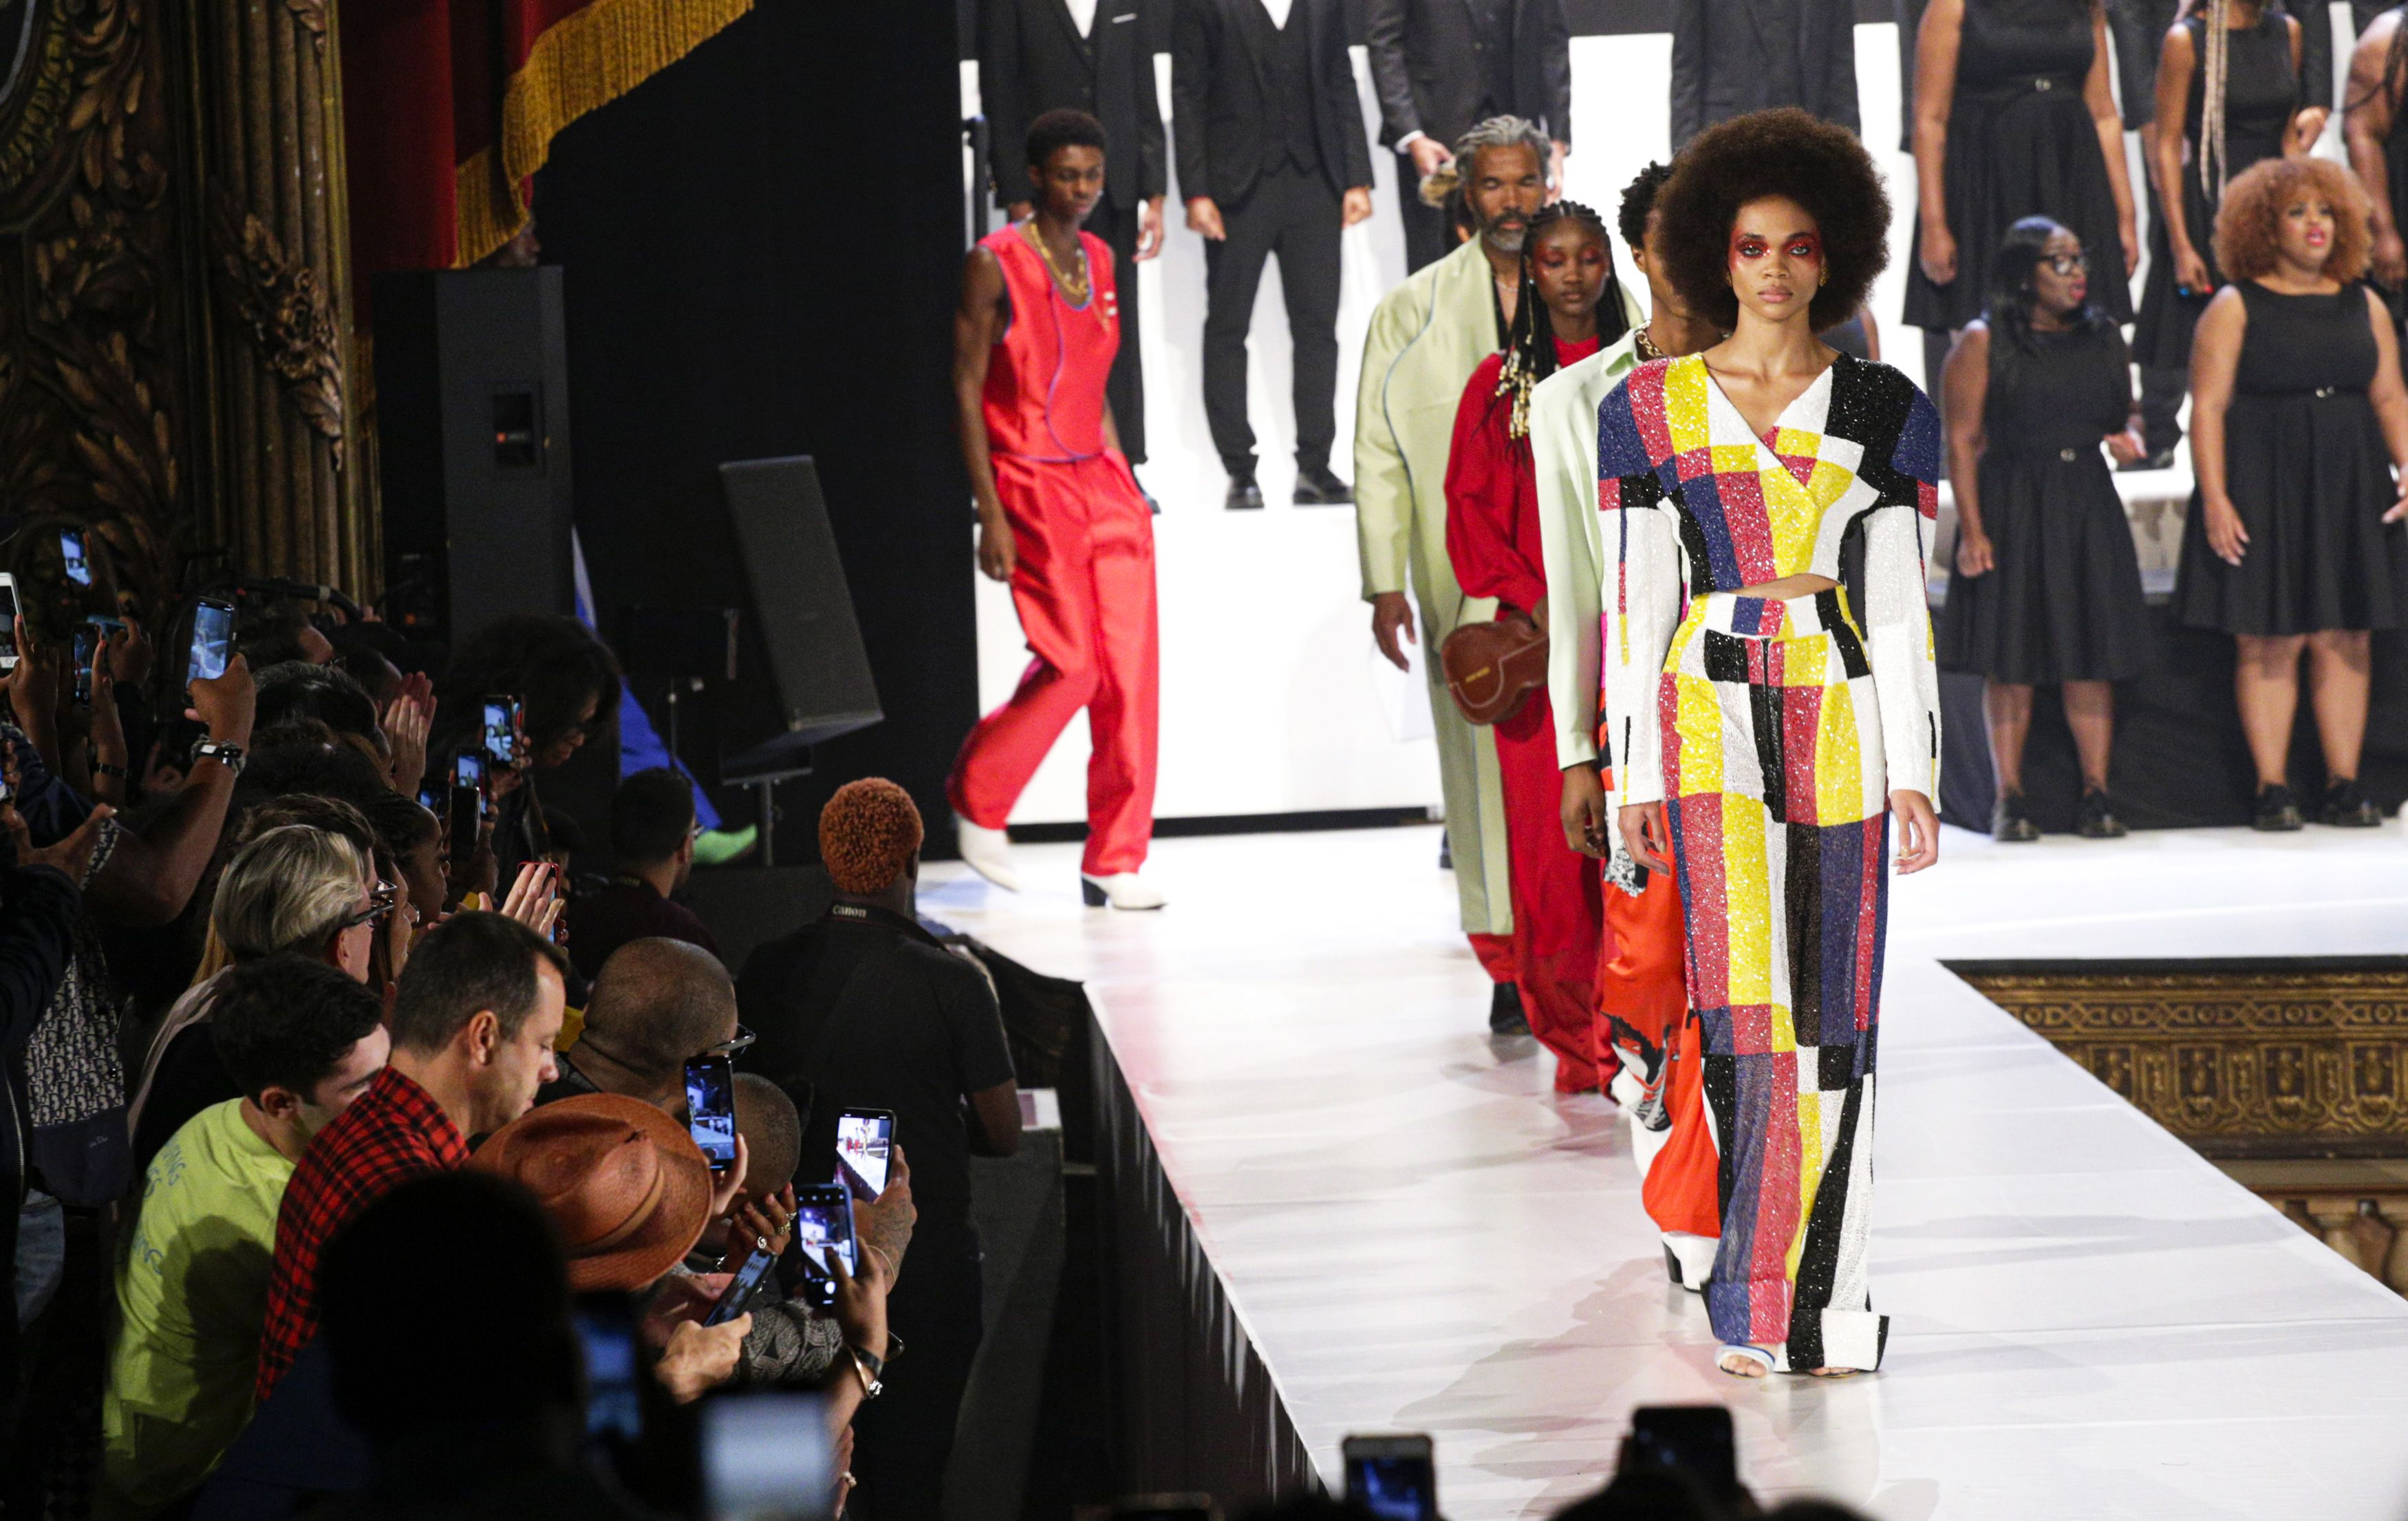 See All the Looks from the Pyer Moss Spring 2020 Show